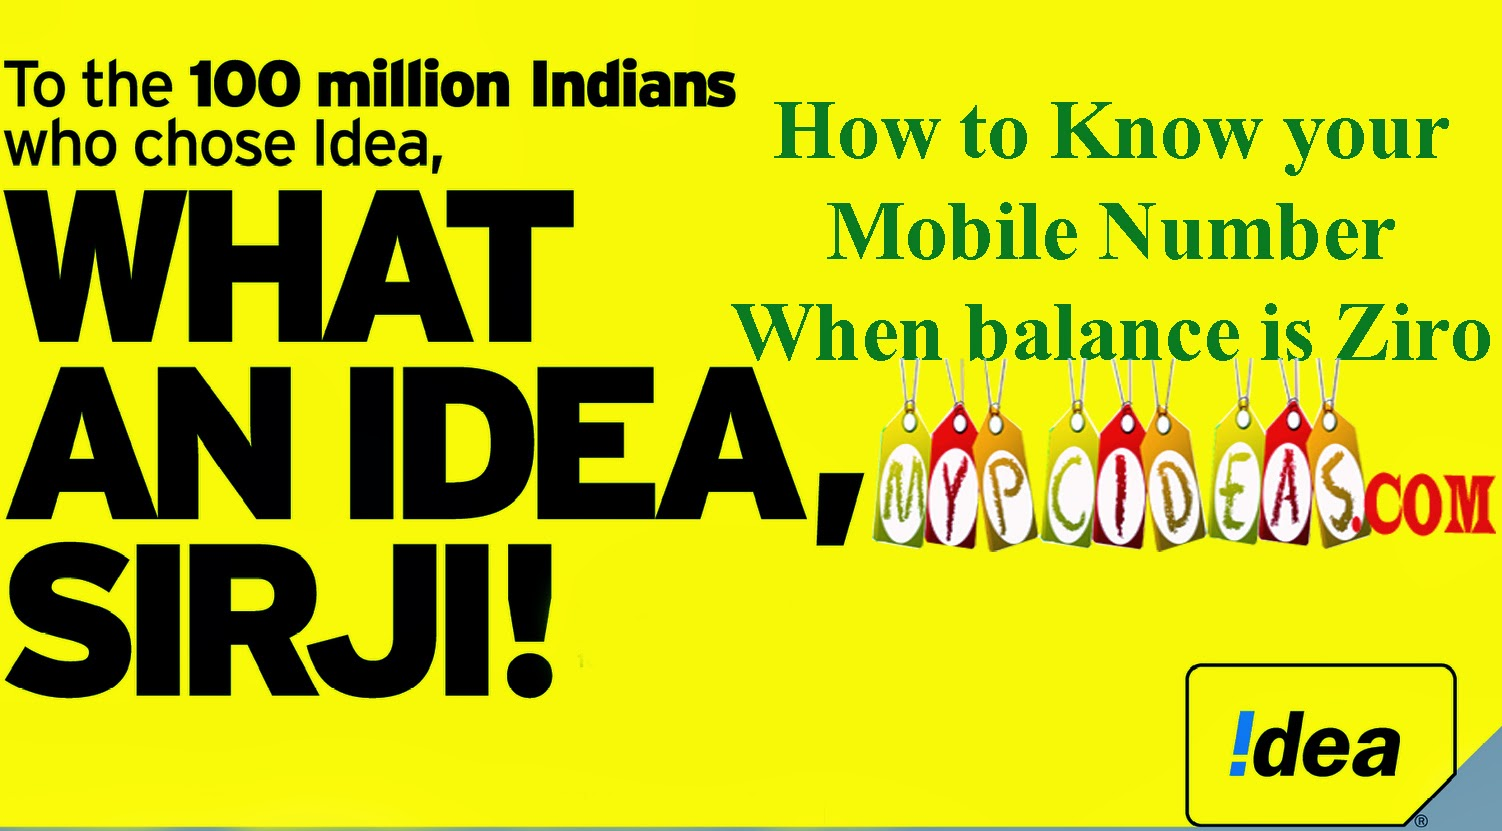 How to know idea mobile number without balance how to ans dont how to know own mobile number in idea sim card when no balance in my sell phone ccuart Gallery